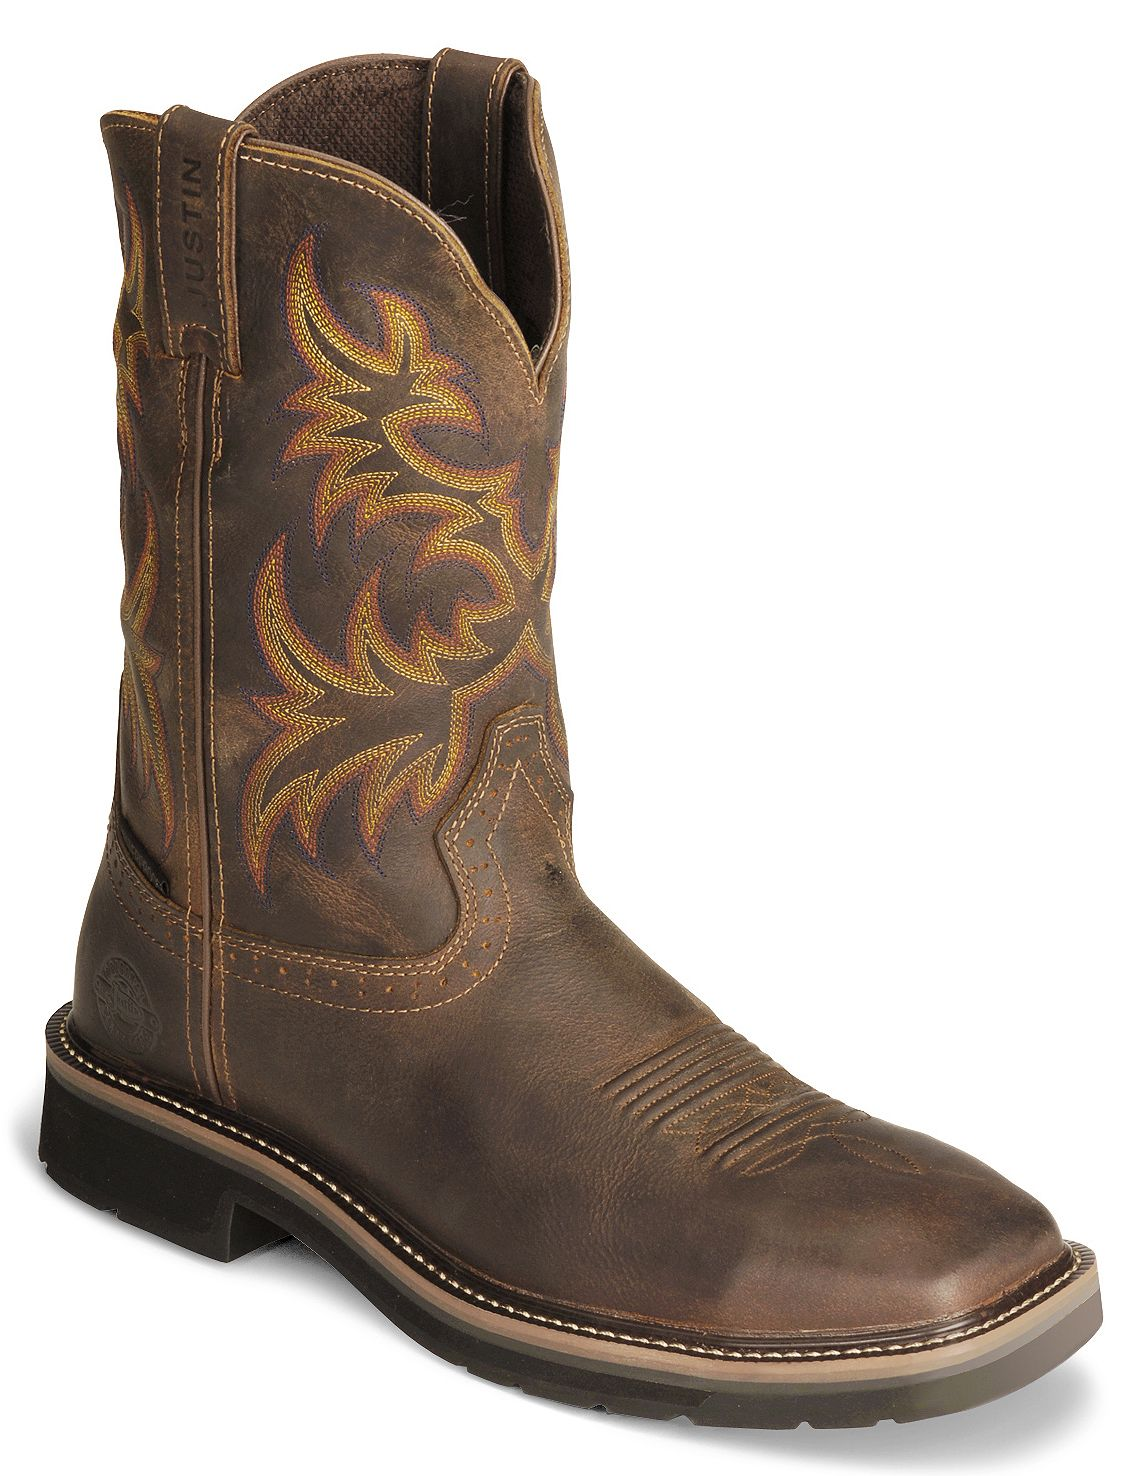 Justin Stampede Tan Waterproof Work Boots Steel Toe